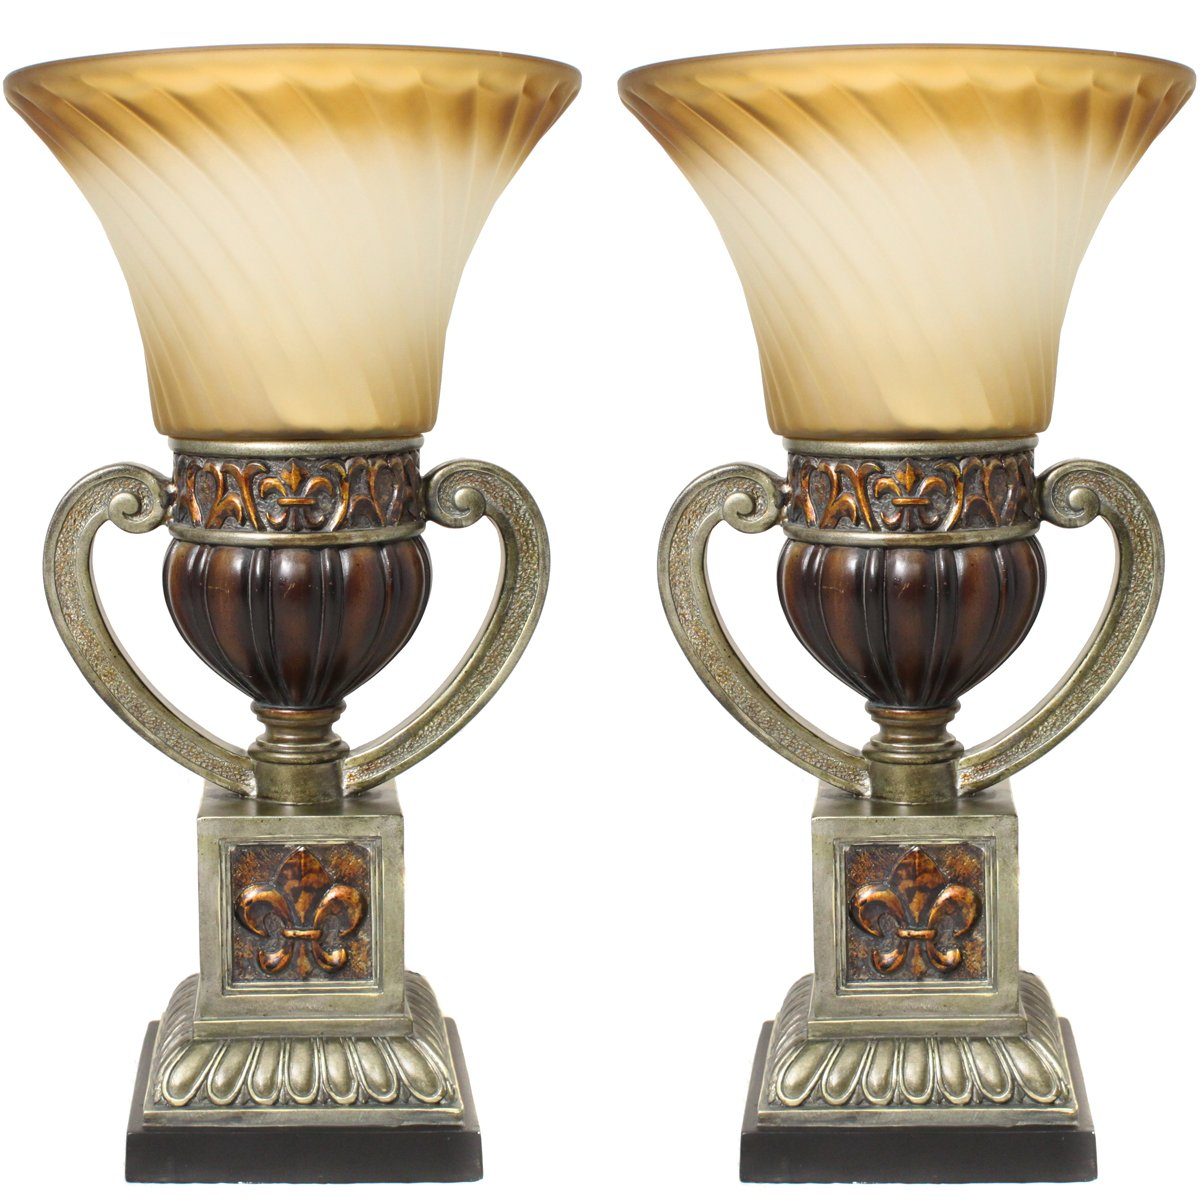 Urban Designs Imported Parisian Torchiere 22'' Uplight Table Lamp - Set of 2, Brown by Urban Designs